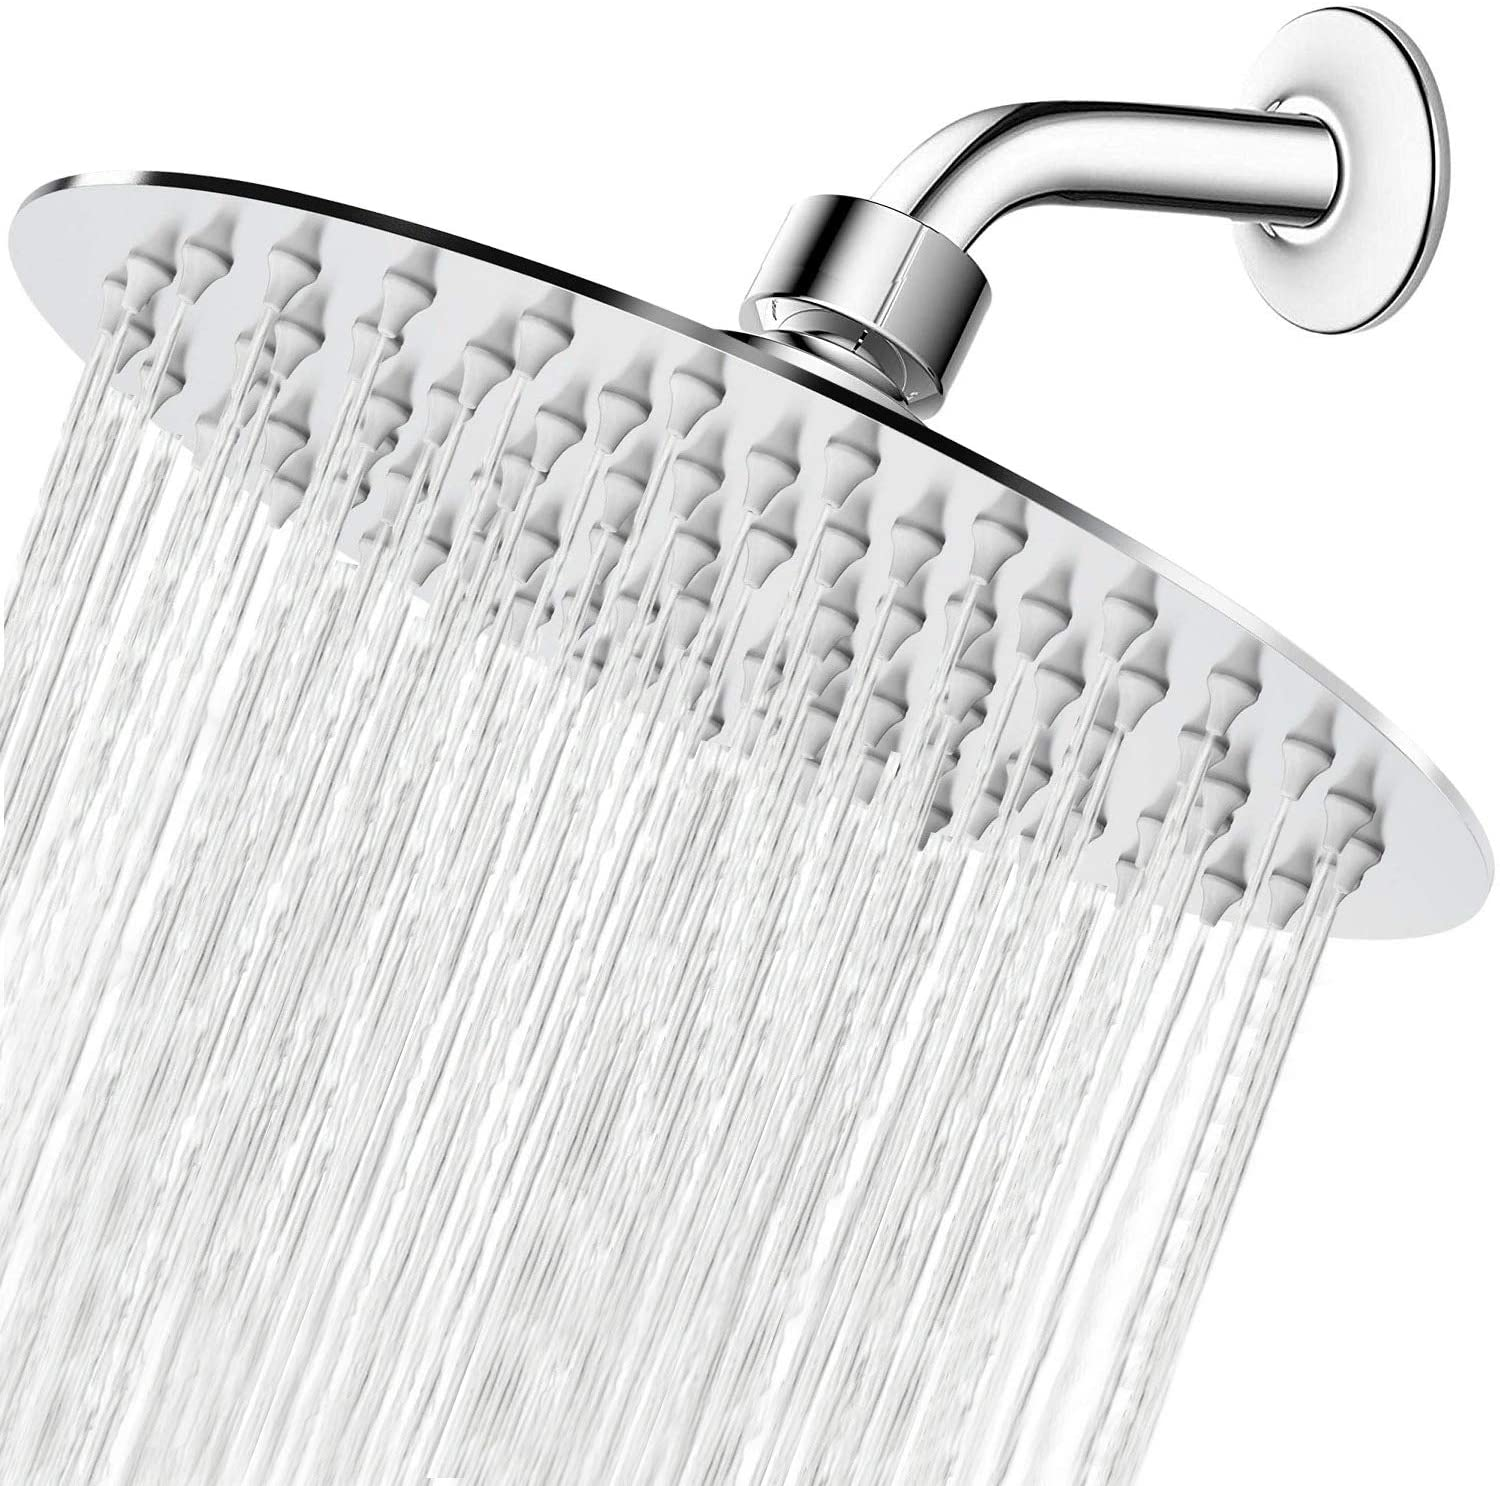 Review of High Pressure Shower Head, 8 Inch Rain Showerhead by NearMoon